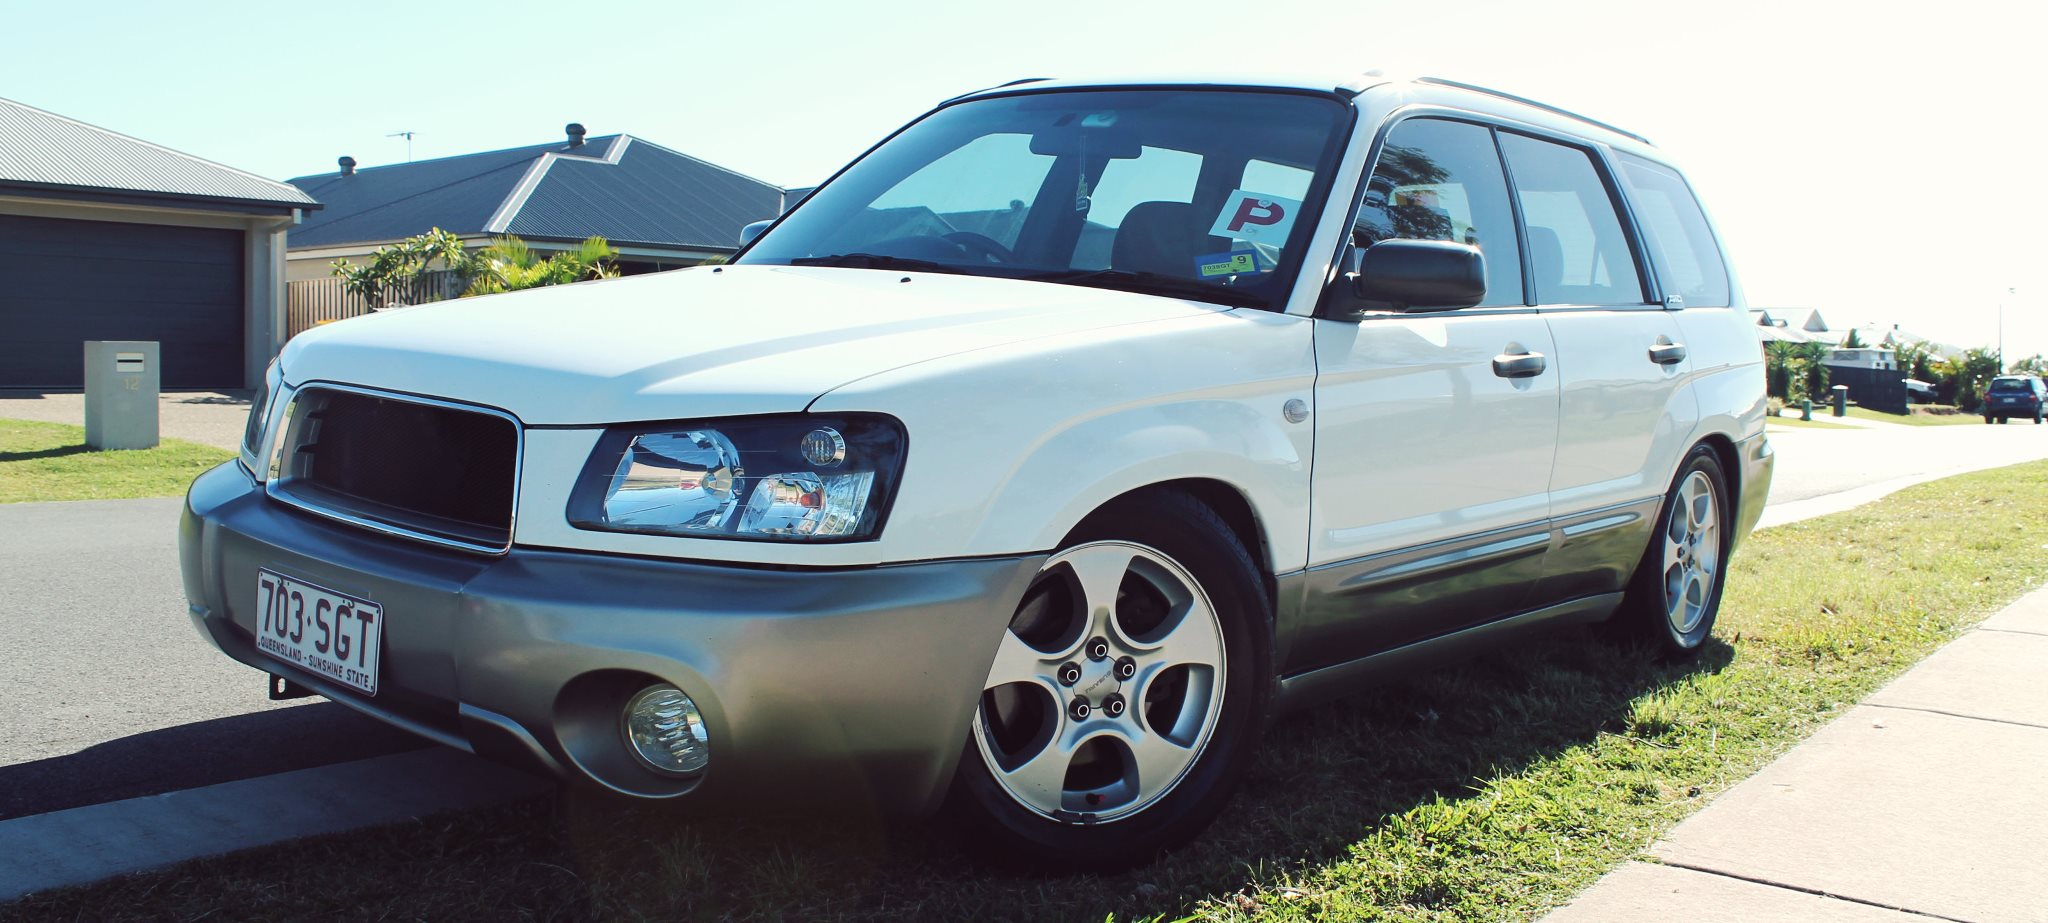 2004 subaru forester xs luxury my04 for sale qld gold coast. Black Bedroom Furniture Sets. Home Design Ideas